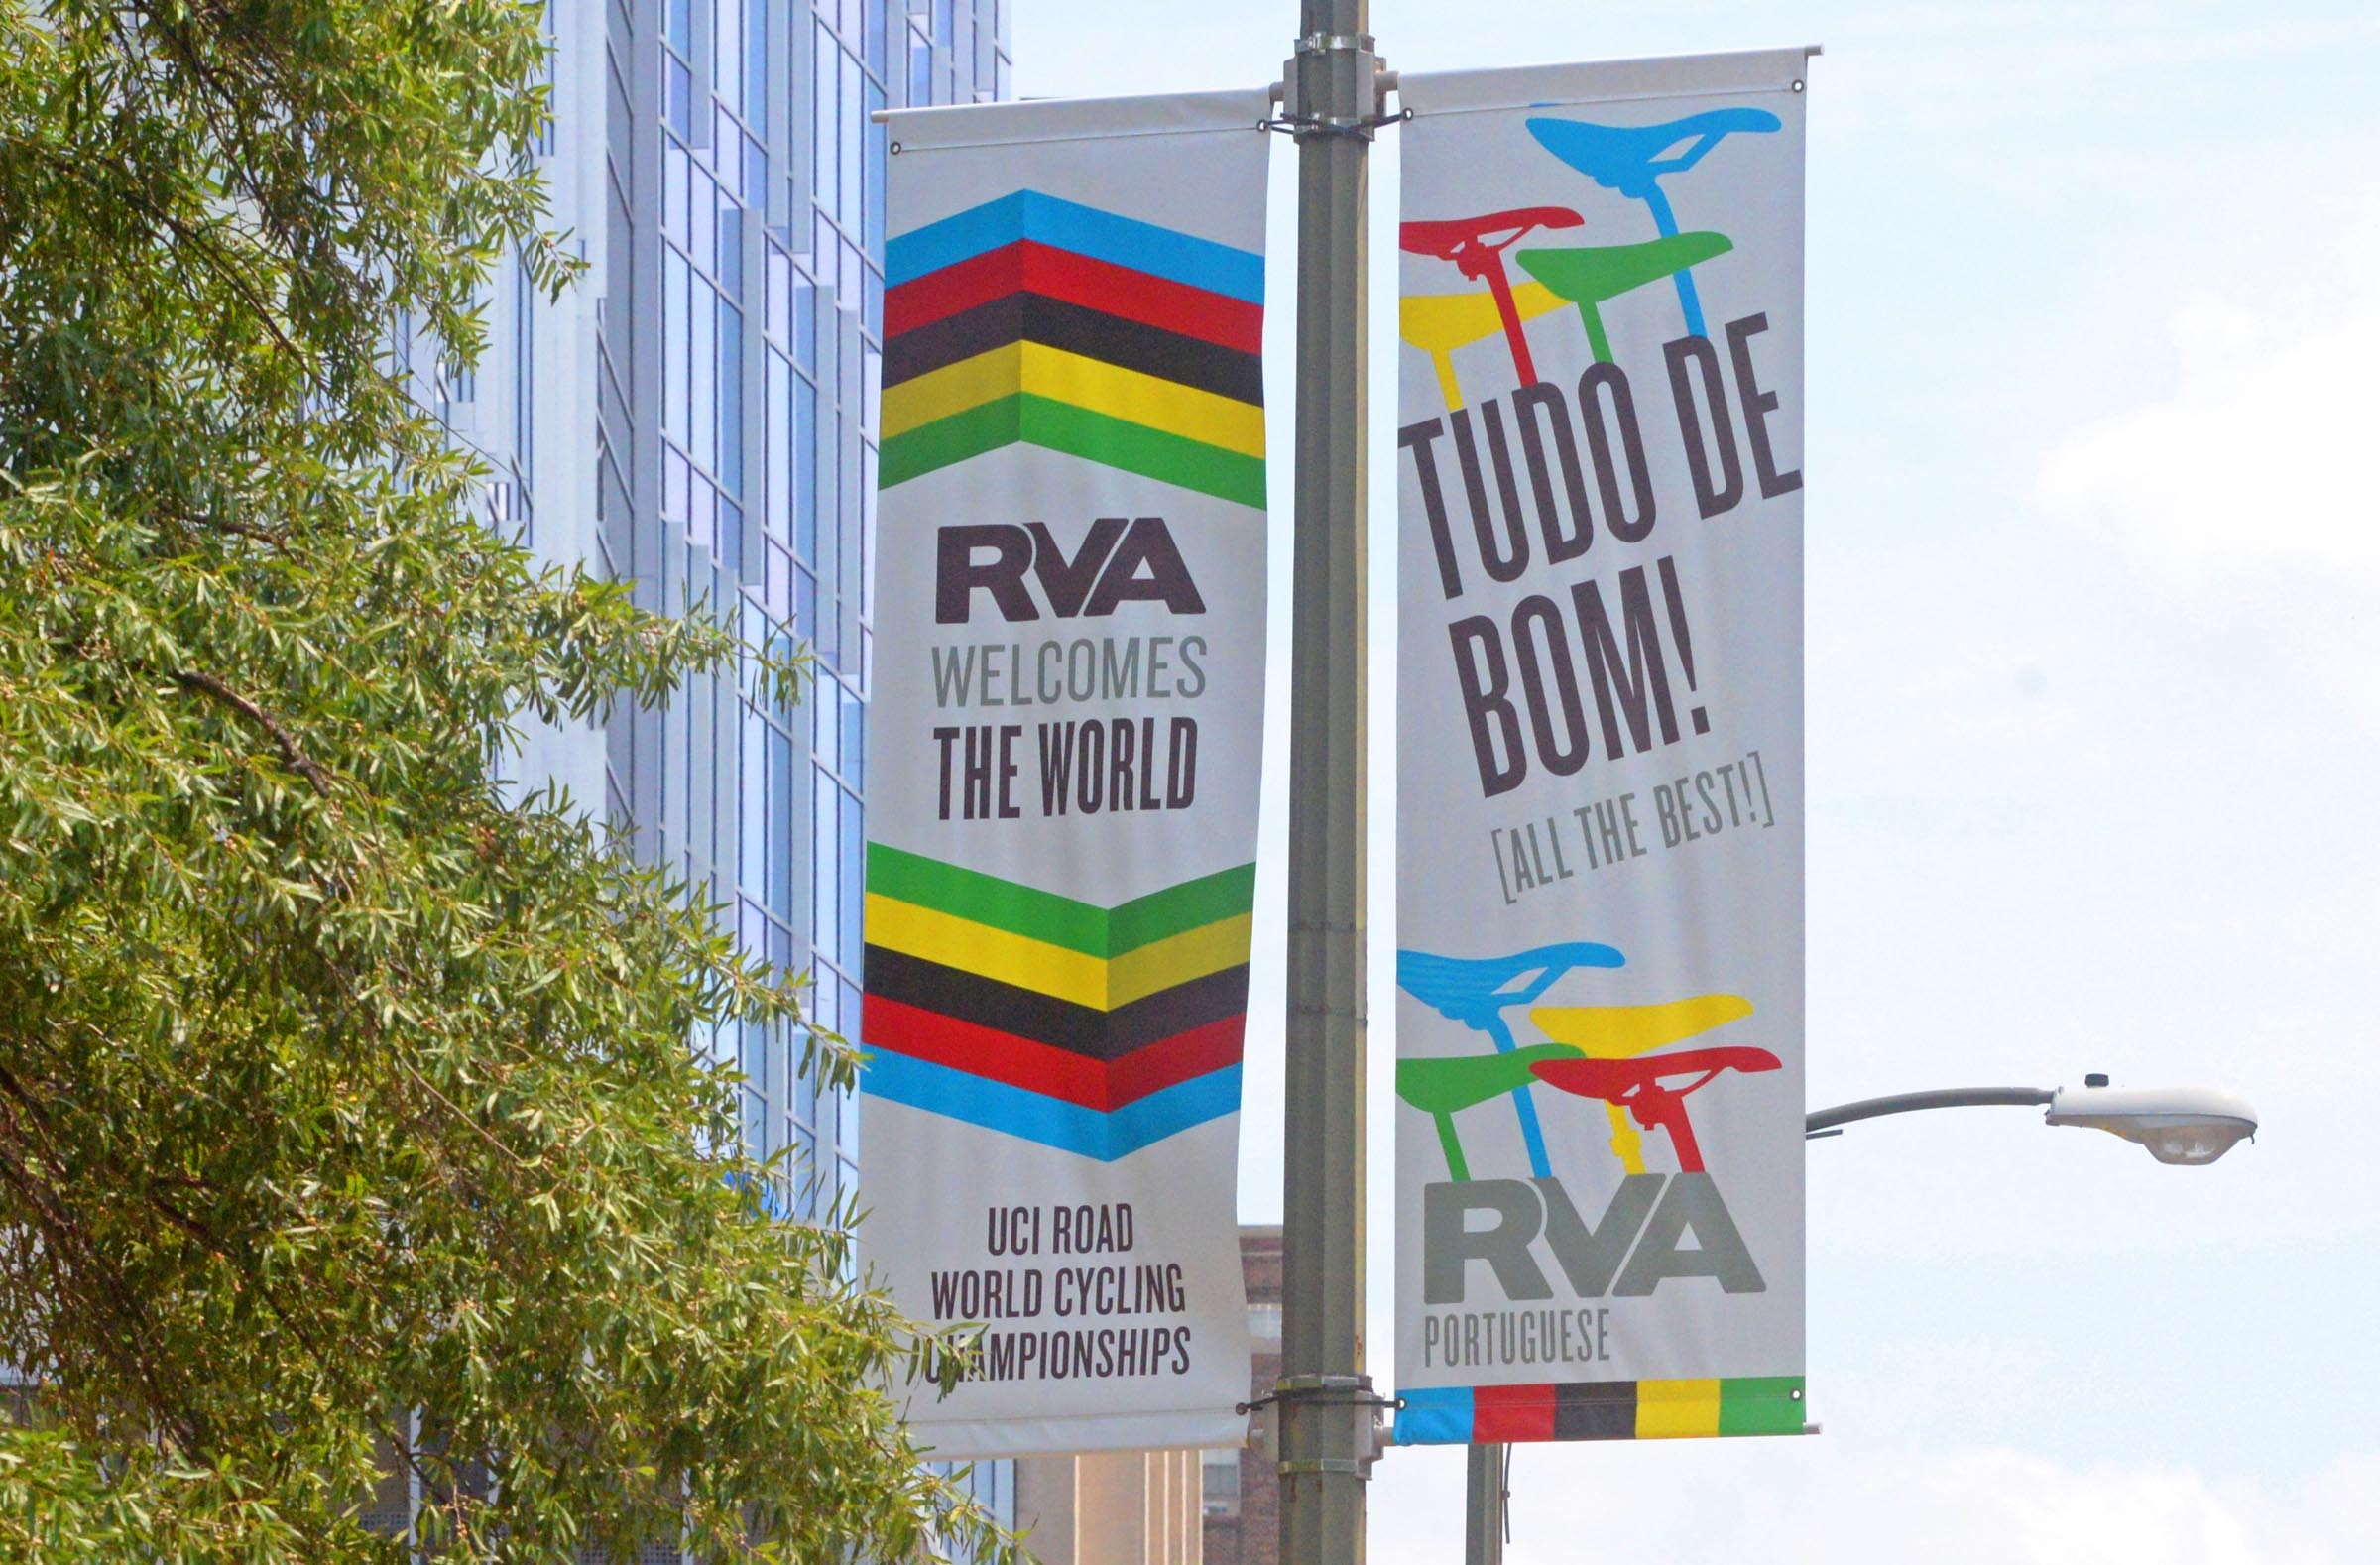 Colorful banners in the 900 block of East Broad are among 200 now installed that will welcome visitors to Richmond in 18 languages.